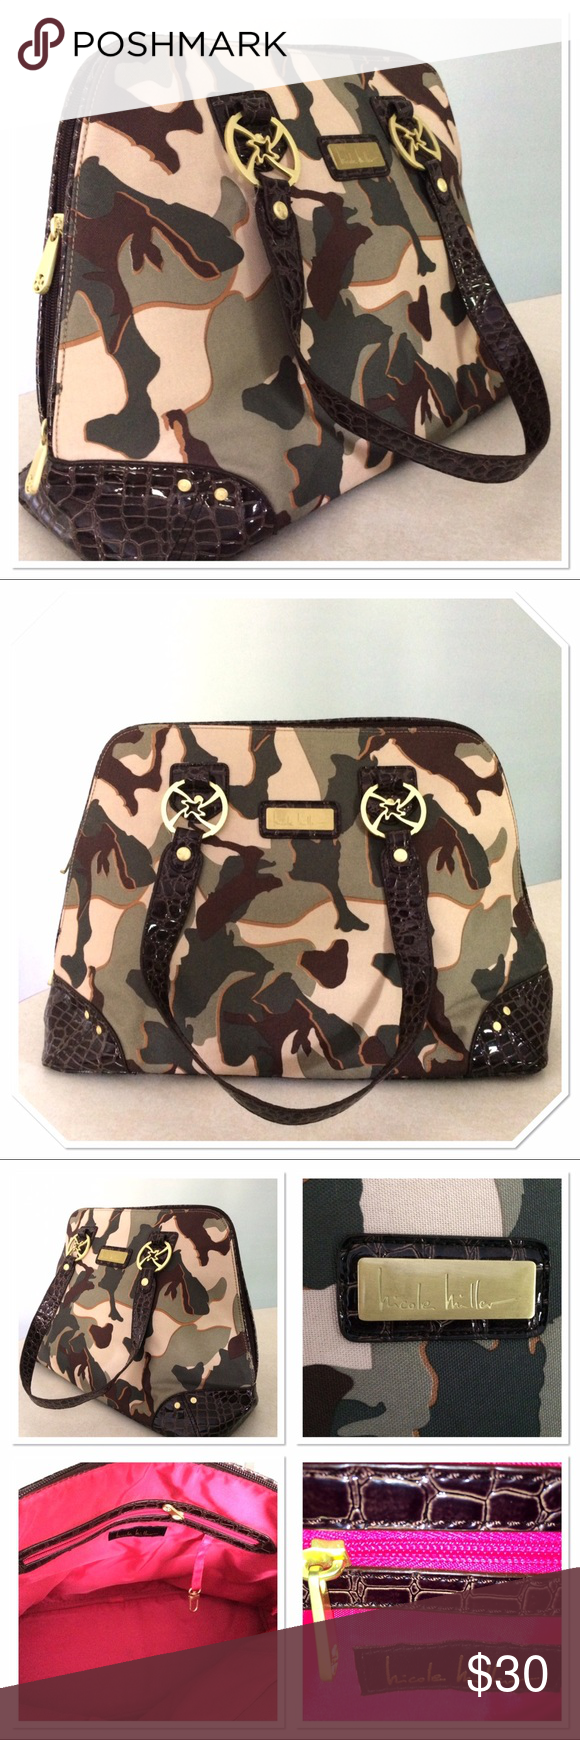 SALE💥 NWOT NICOLE MILLER CAMOUFLAGE TOTE Overnight